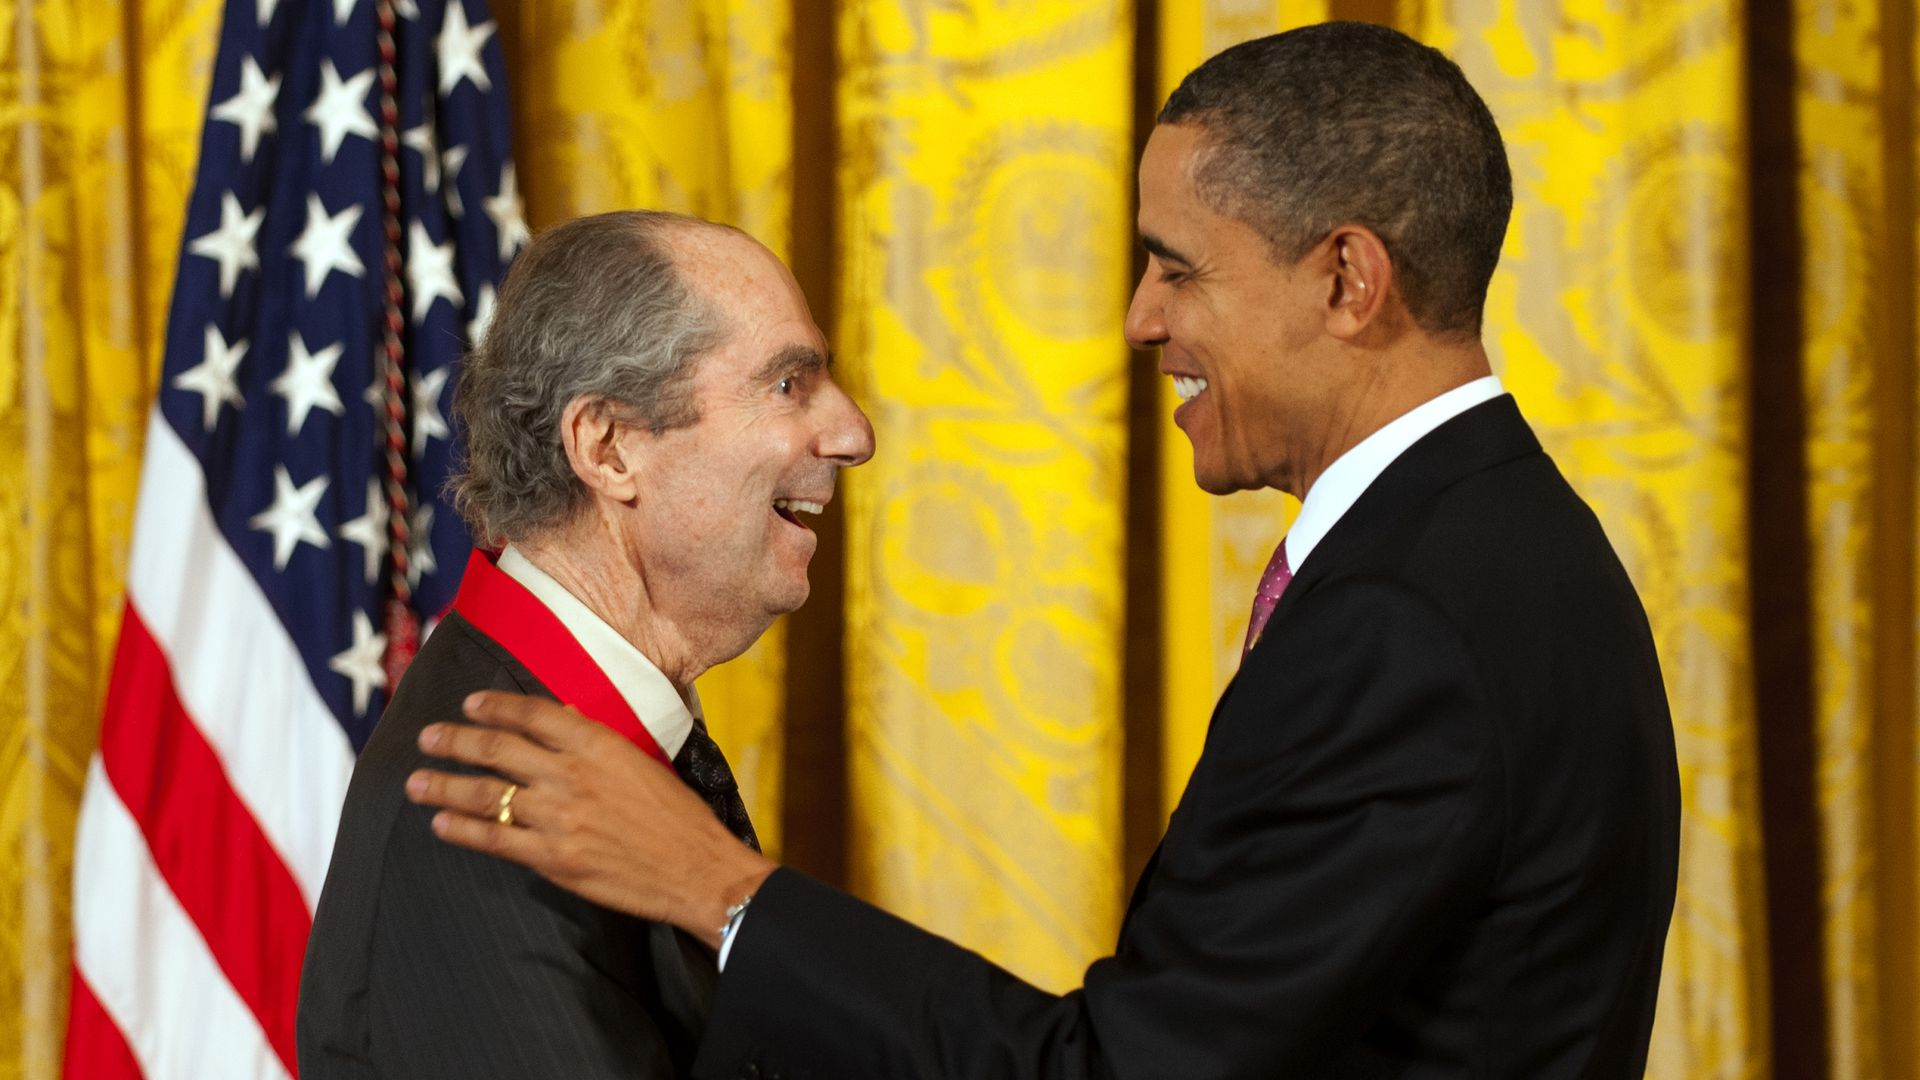 Obama places his hands on Roth's shoulders